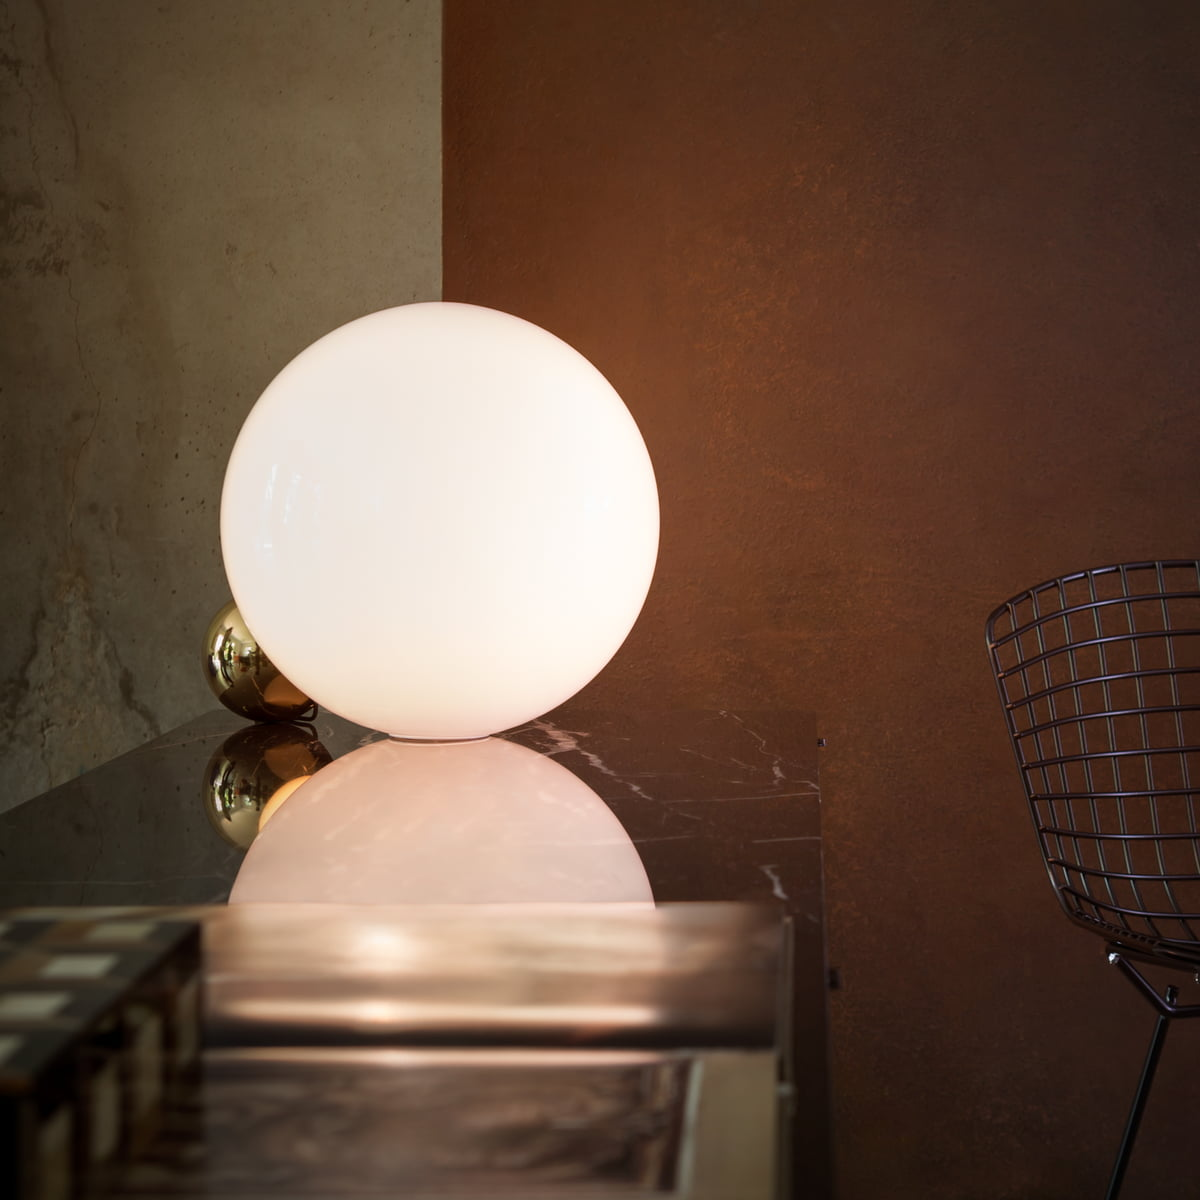 Copycat led table lamp by flos in the shop flos copycat table lamp led gold mozeypictures Choice Image